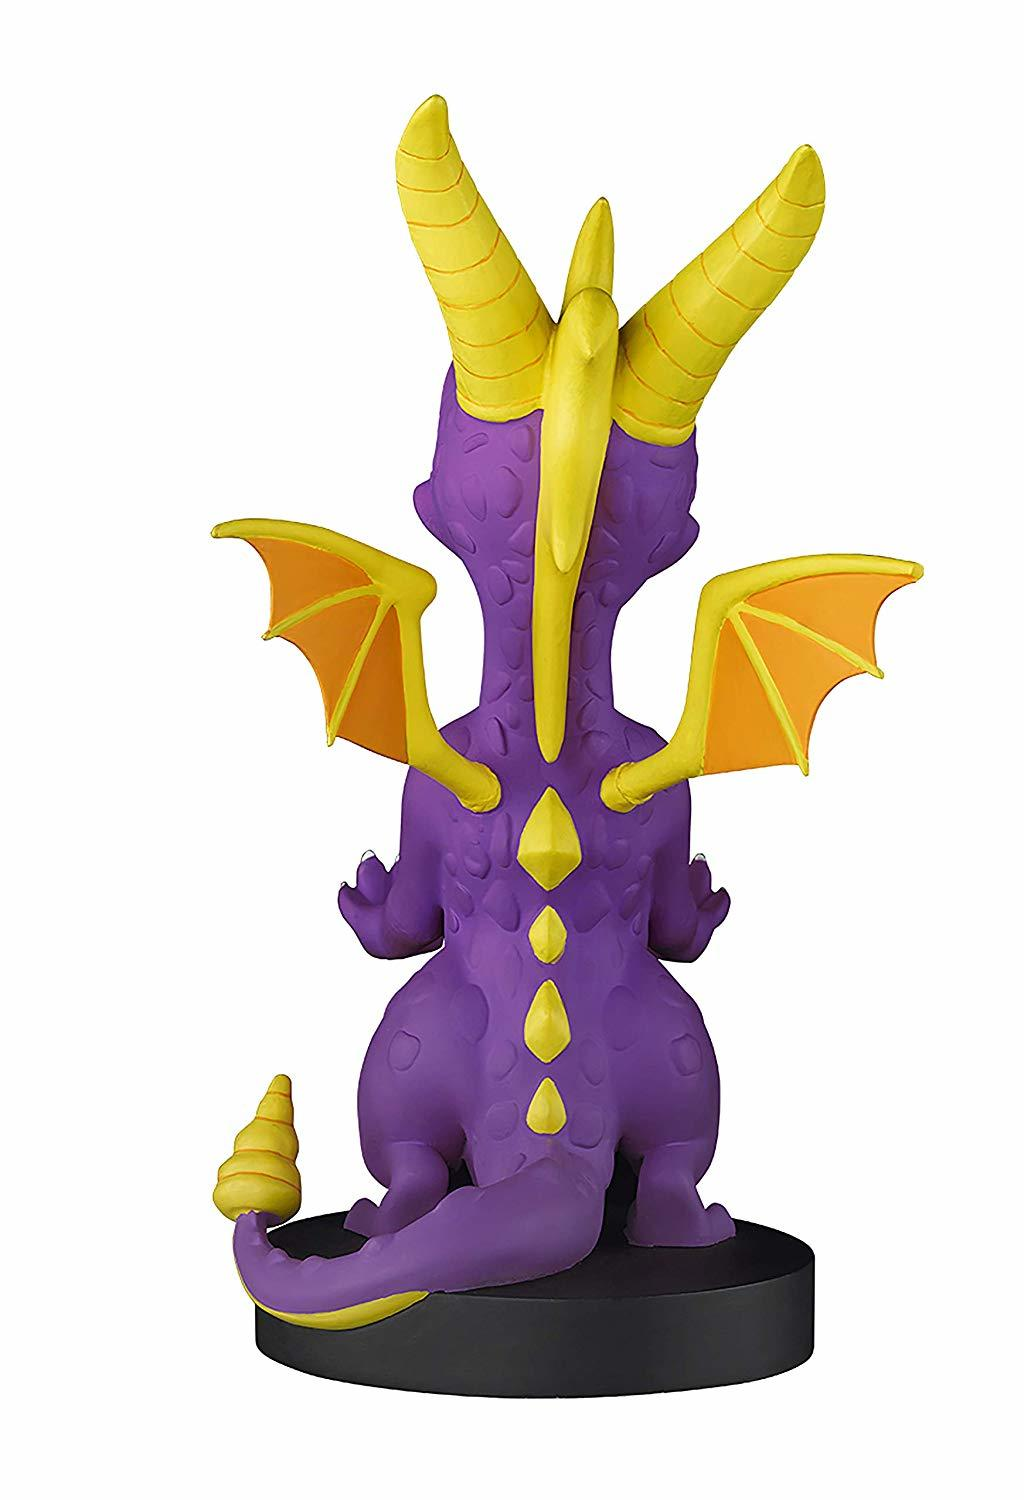 Cable Guy Controller Holder - Spyro - PS4